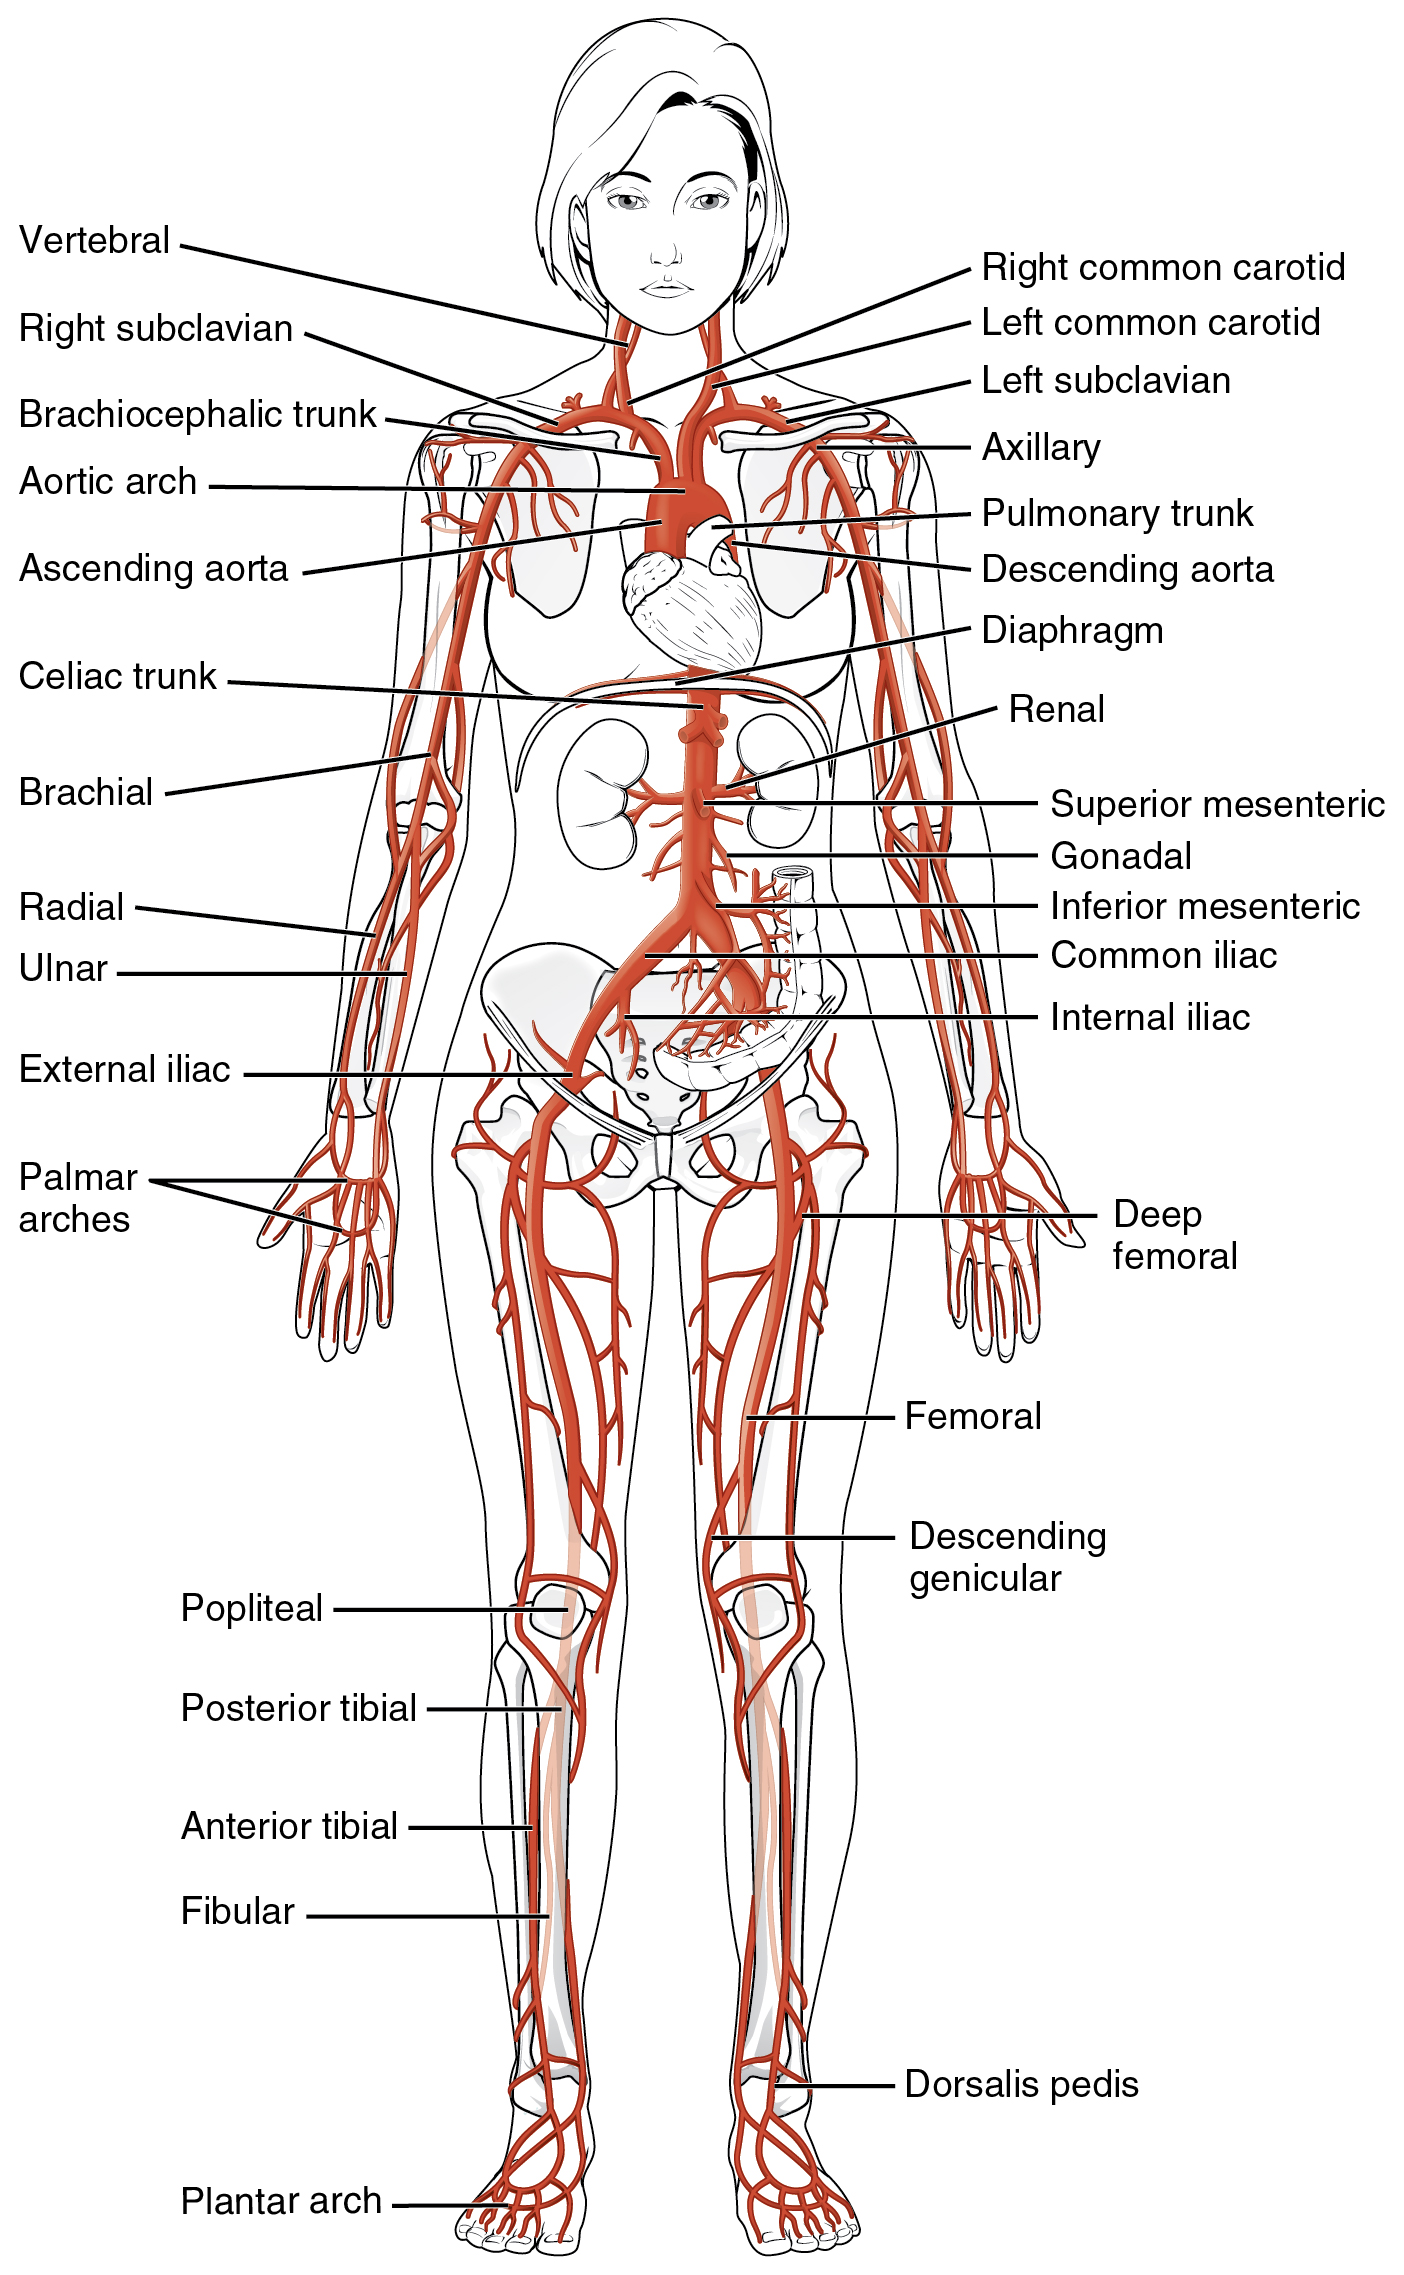 Anatomy Physiology Diagrams Circulatory System - Block And Schematic ...